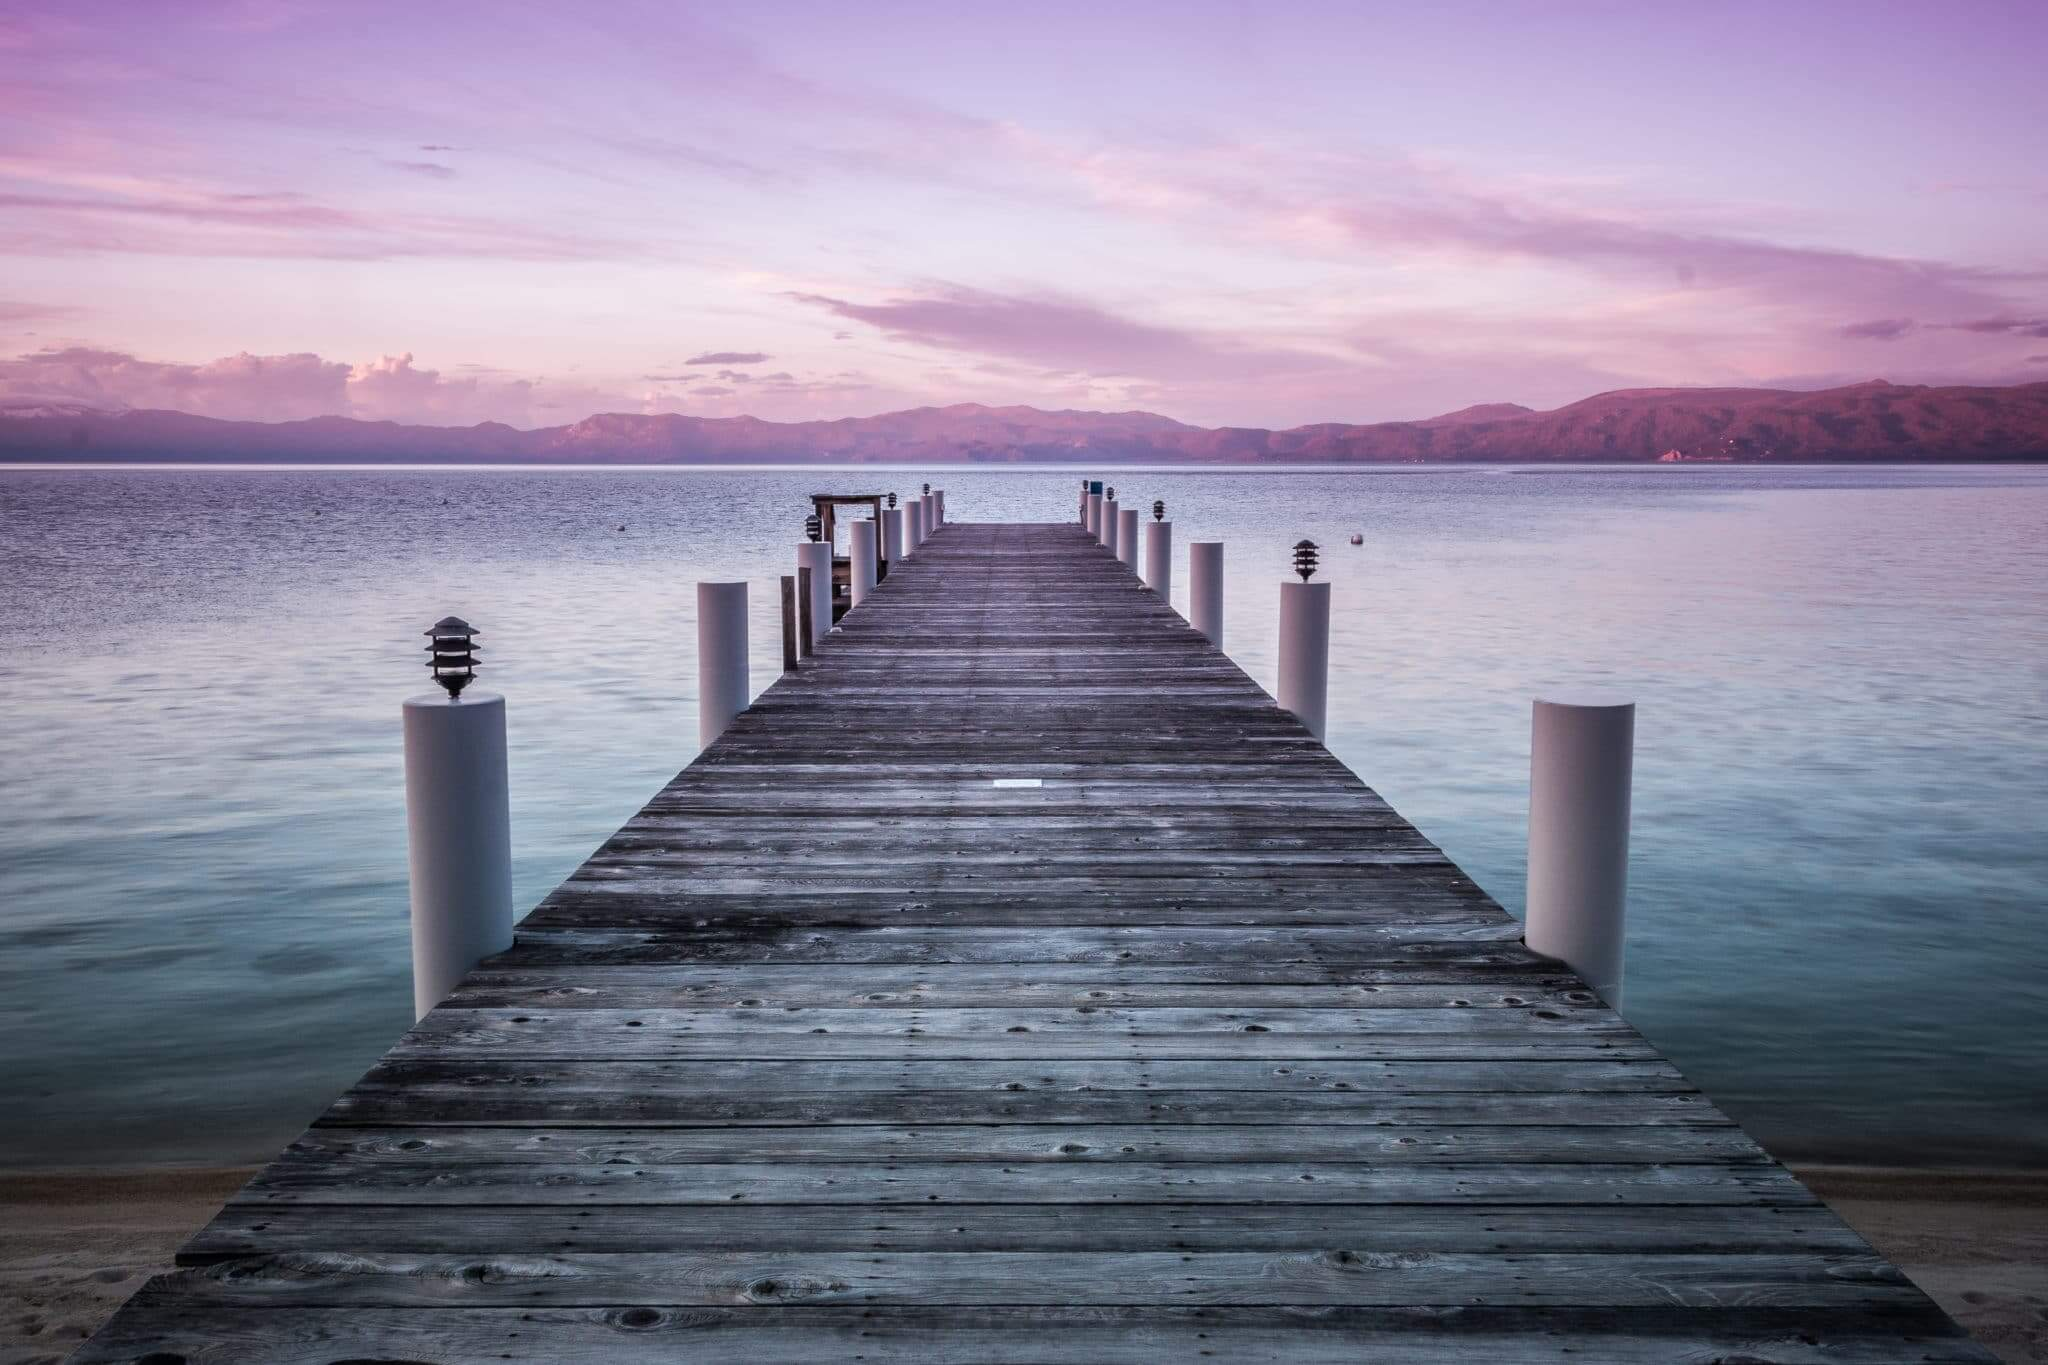 Sunset view of Lake Tahoe from a pier